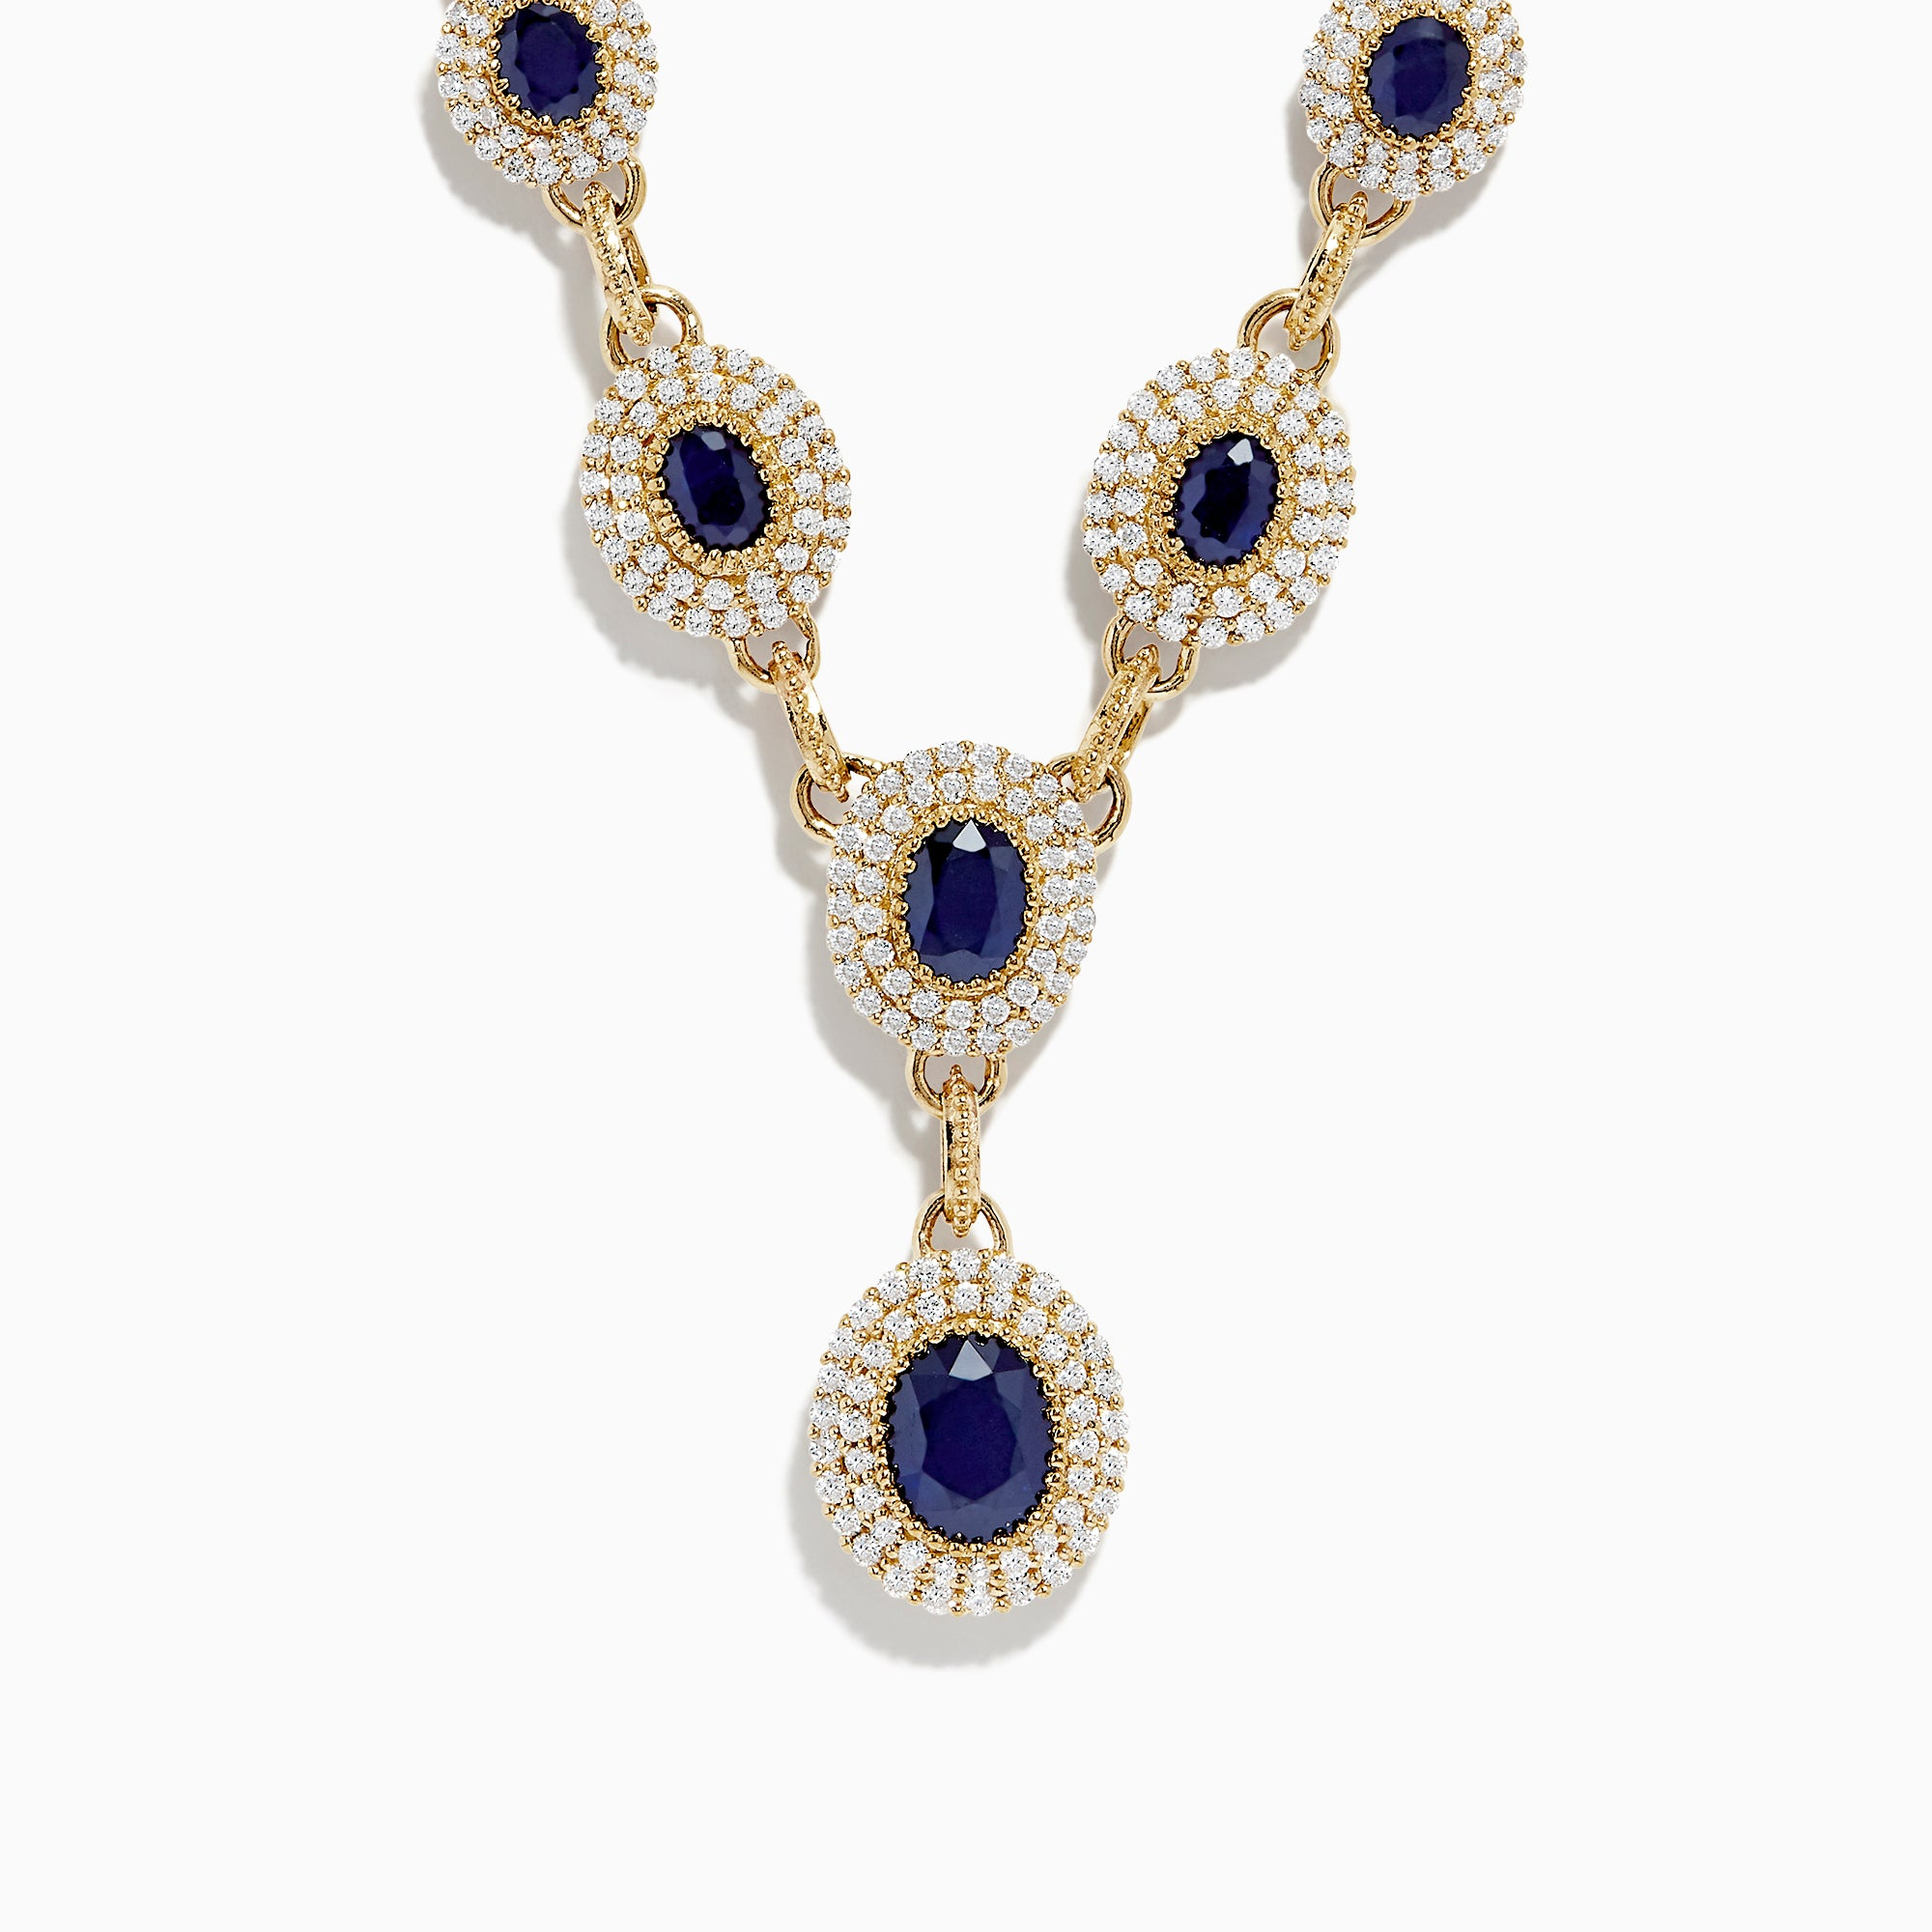 Effy 14K Yellow Gold Sapphire and Diamond Necklace, 7.14 TCW